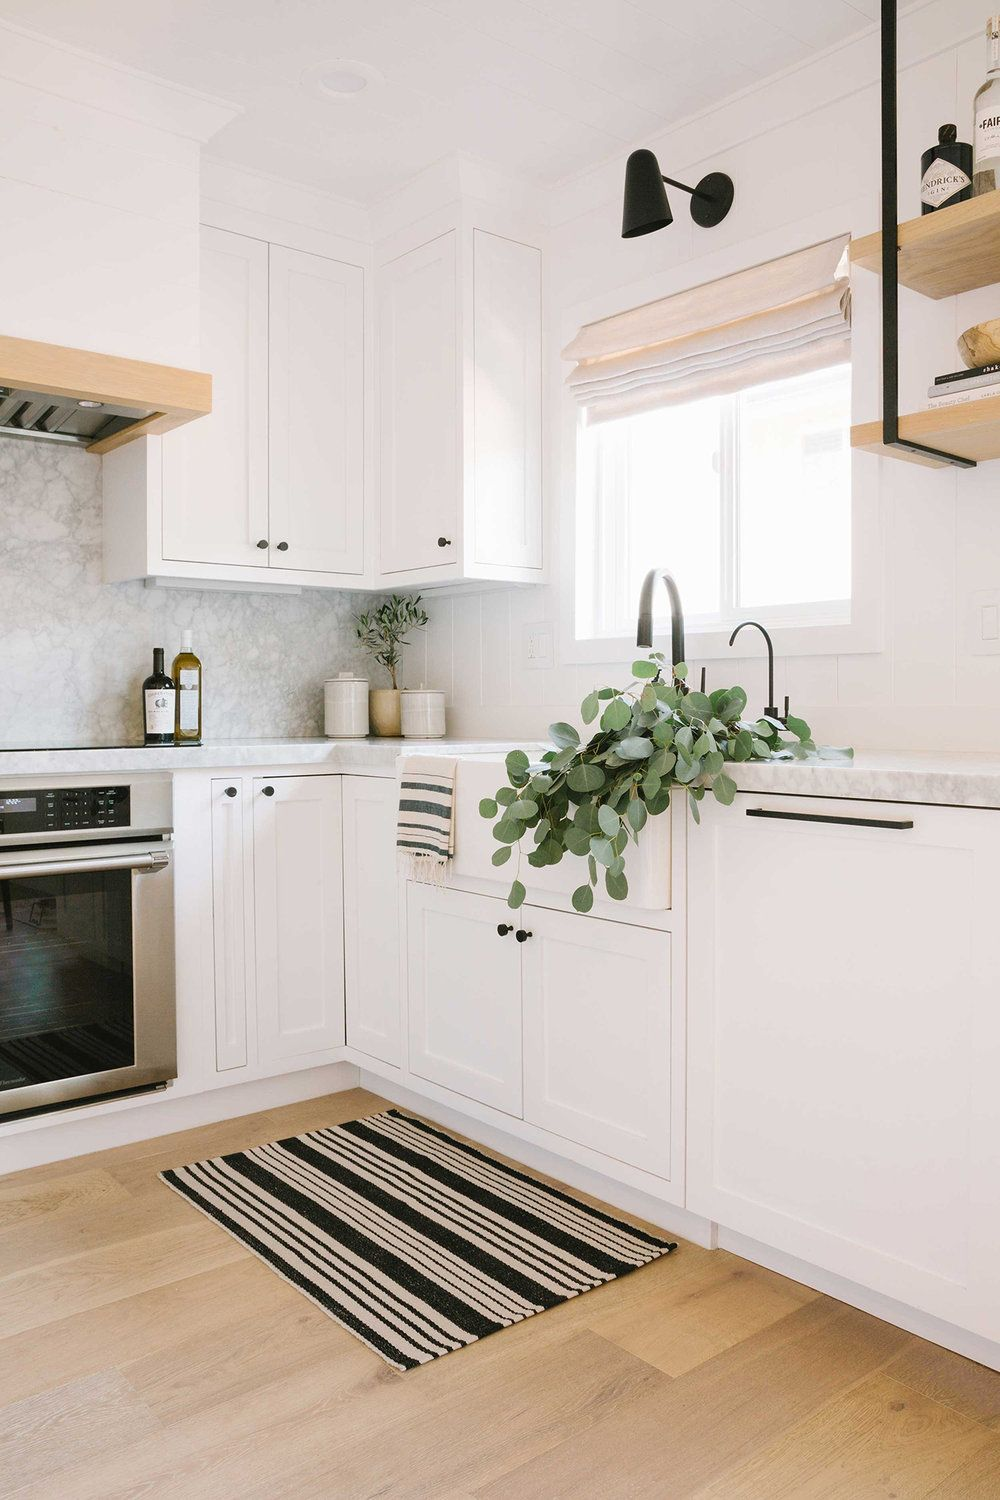 The Most Pinteresting Things This Month May Farmhouse Living White Kitchen Design Kitchen Design Kitchen Inspirations